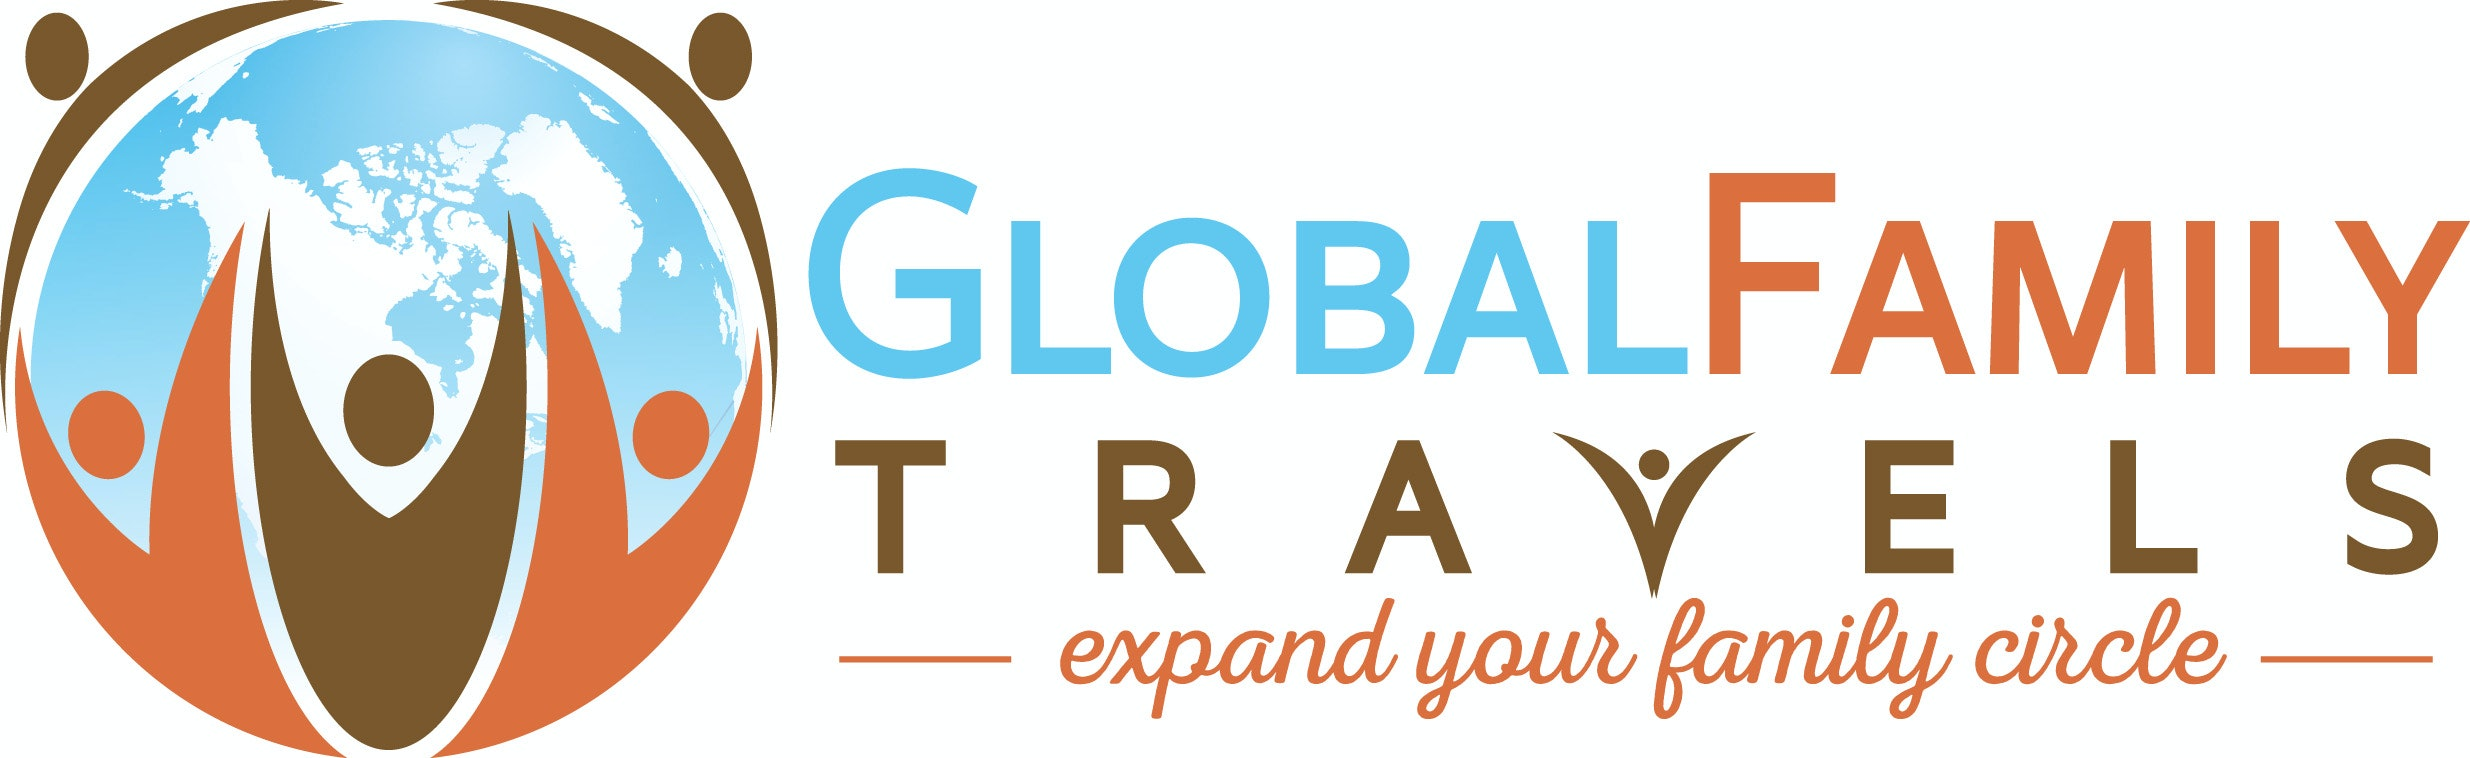 Global Family Travel logo